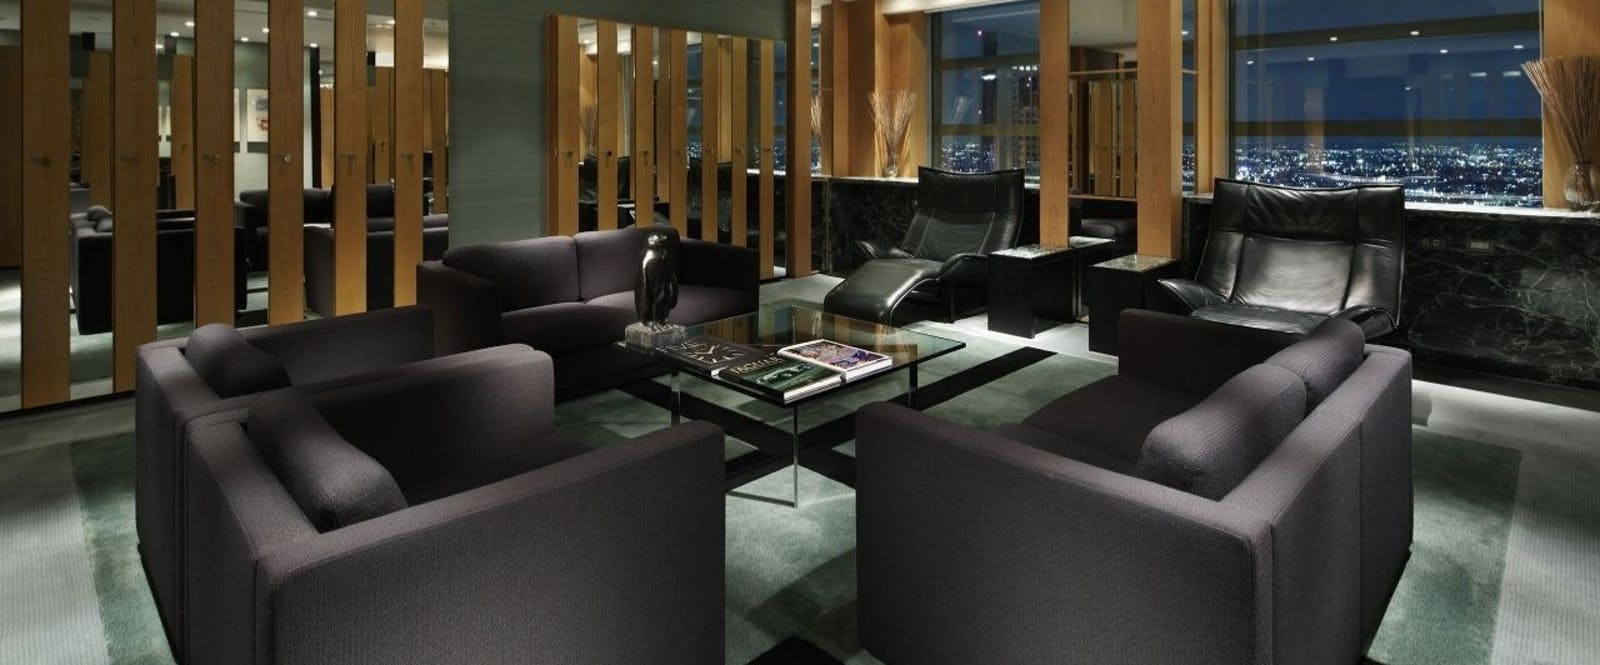 Club on the Park Lounge at Park Hyatt Tokyo, Japan